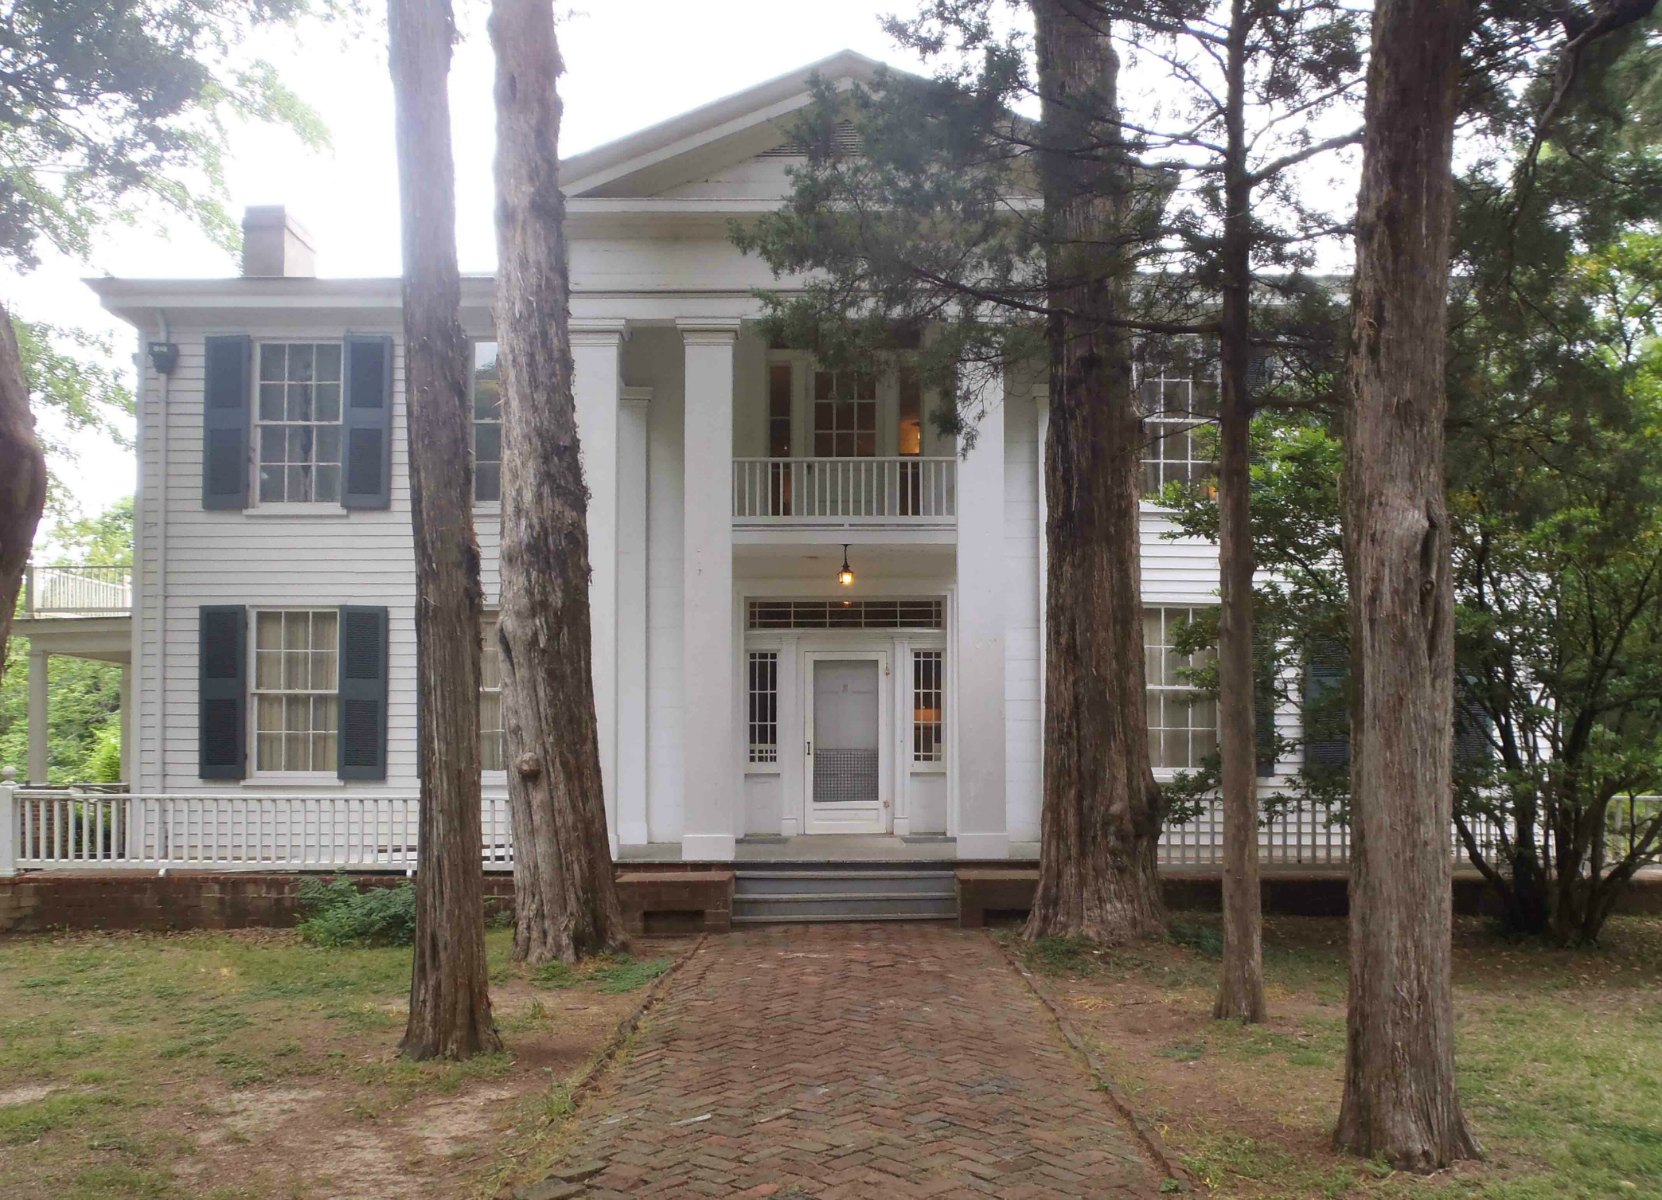 The entrance to Rowan Oak, William Faulkner's home from 1930 until his death in 1962.